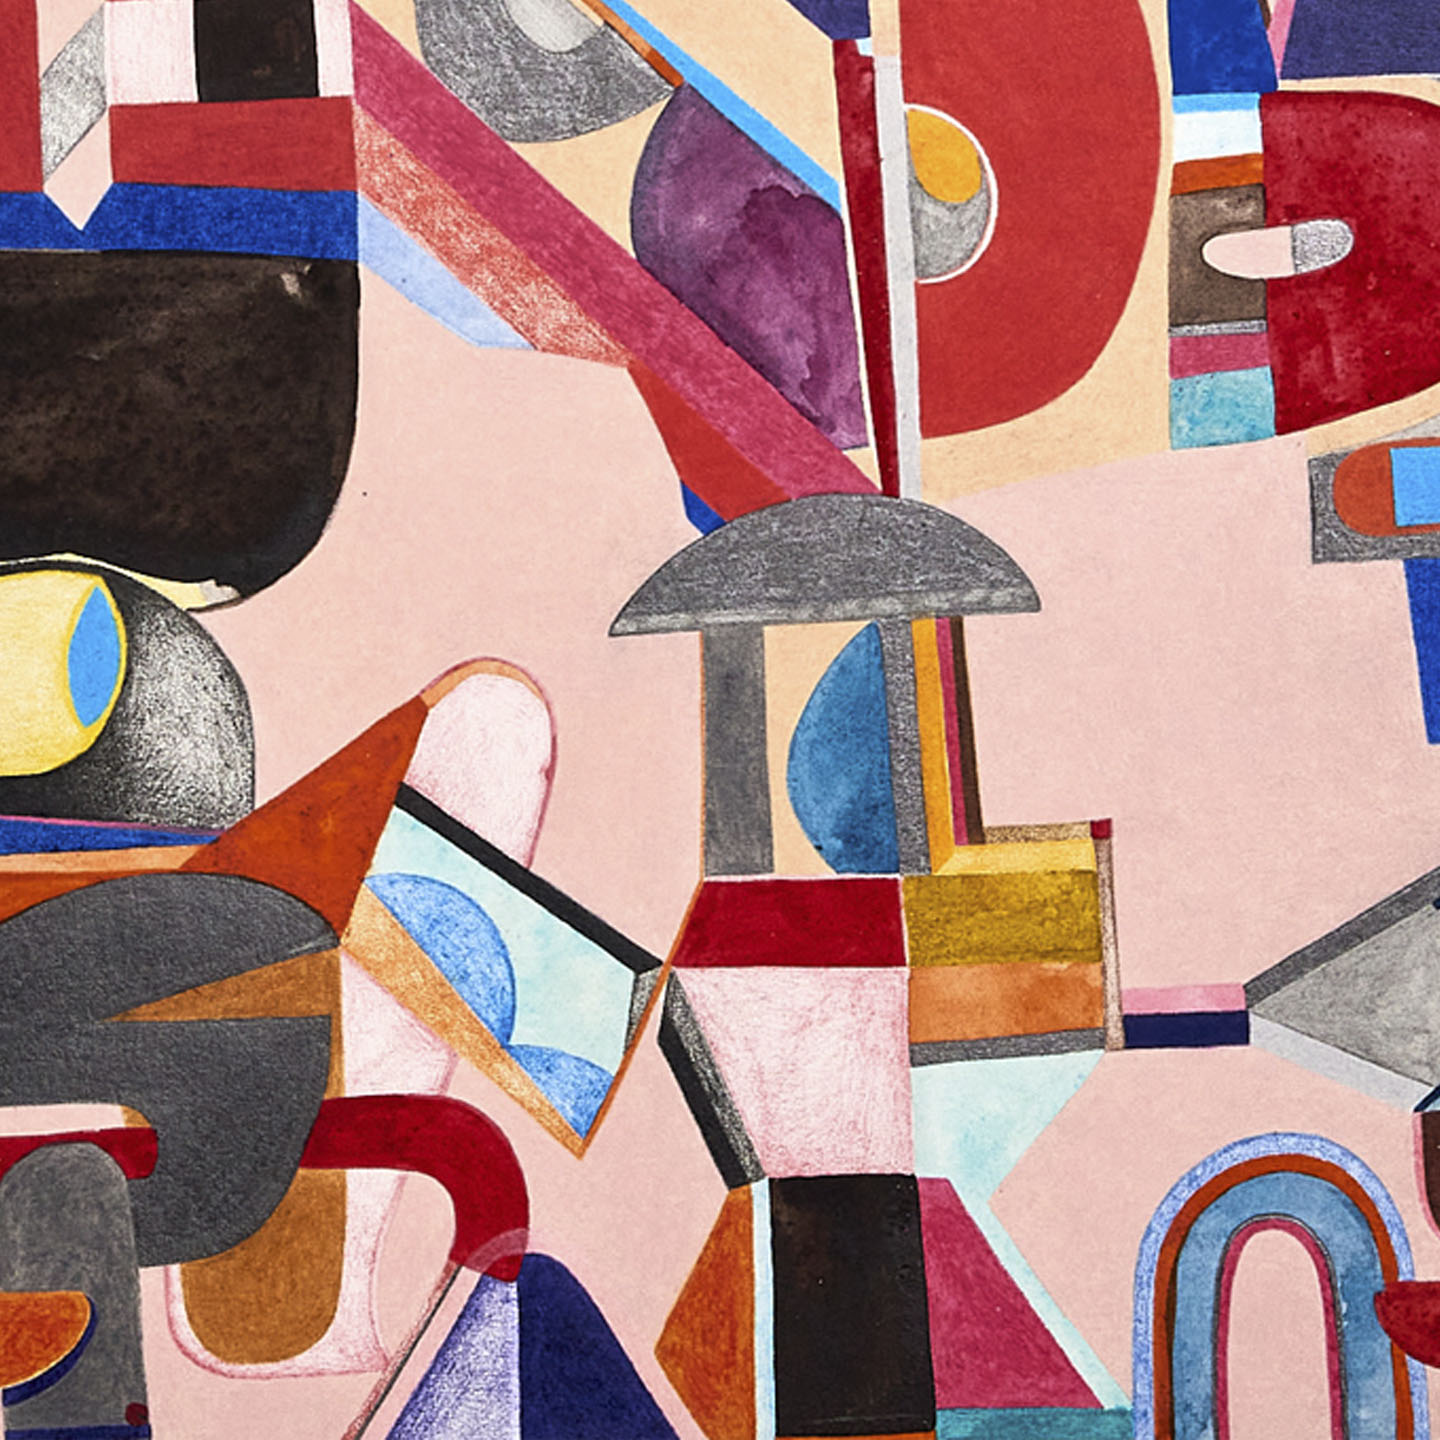 contemporary art, colorful art, contemporary, nature art work, tree art, moody painting, natural art, art, colorful art, geometric rainbow art, modern art, colorful abstract art, rent art, modern oil painting, warm color tones, bright pantone, fun art for office, colorful contemporary painting, yellow red blue painting, vibrant contrasting art, vibrant color palette, abstract colorful, art work for home, painting for apartment, hand painted artwork, unique home painting, geometric rainbow art, modern art, colorful abstract art, rent art, modern oil painting, warm color tones, bright pantone, fun art for office, colorful contemporary painting, yellow red blue painting, vibrant contrasting art, vibrant color palette, abstract colorful, art work for home, painting for apartment, hand painted artwork, unique home painting, black and white art, black white yellow art, oil canvas painting, modern art inspiration, sculpture for home, colorful wall art